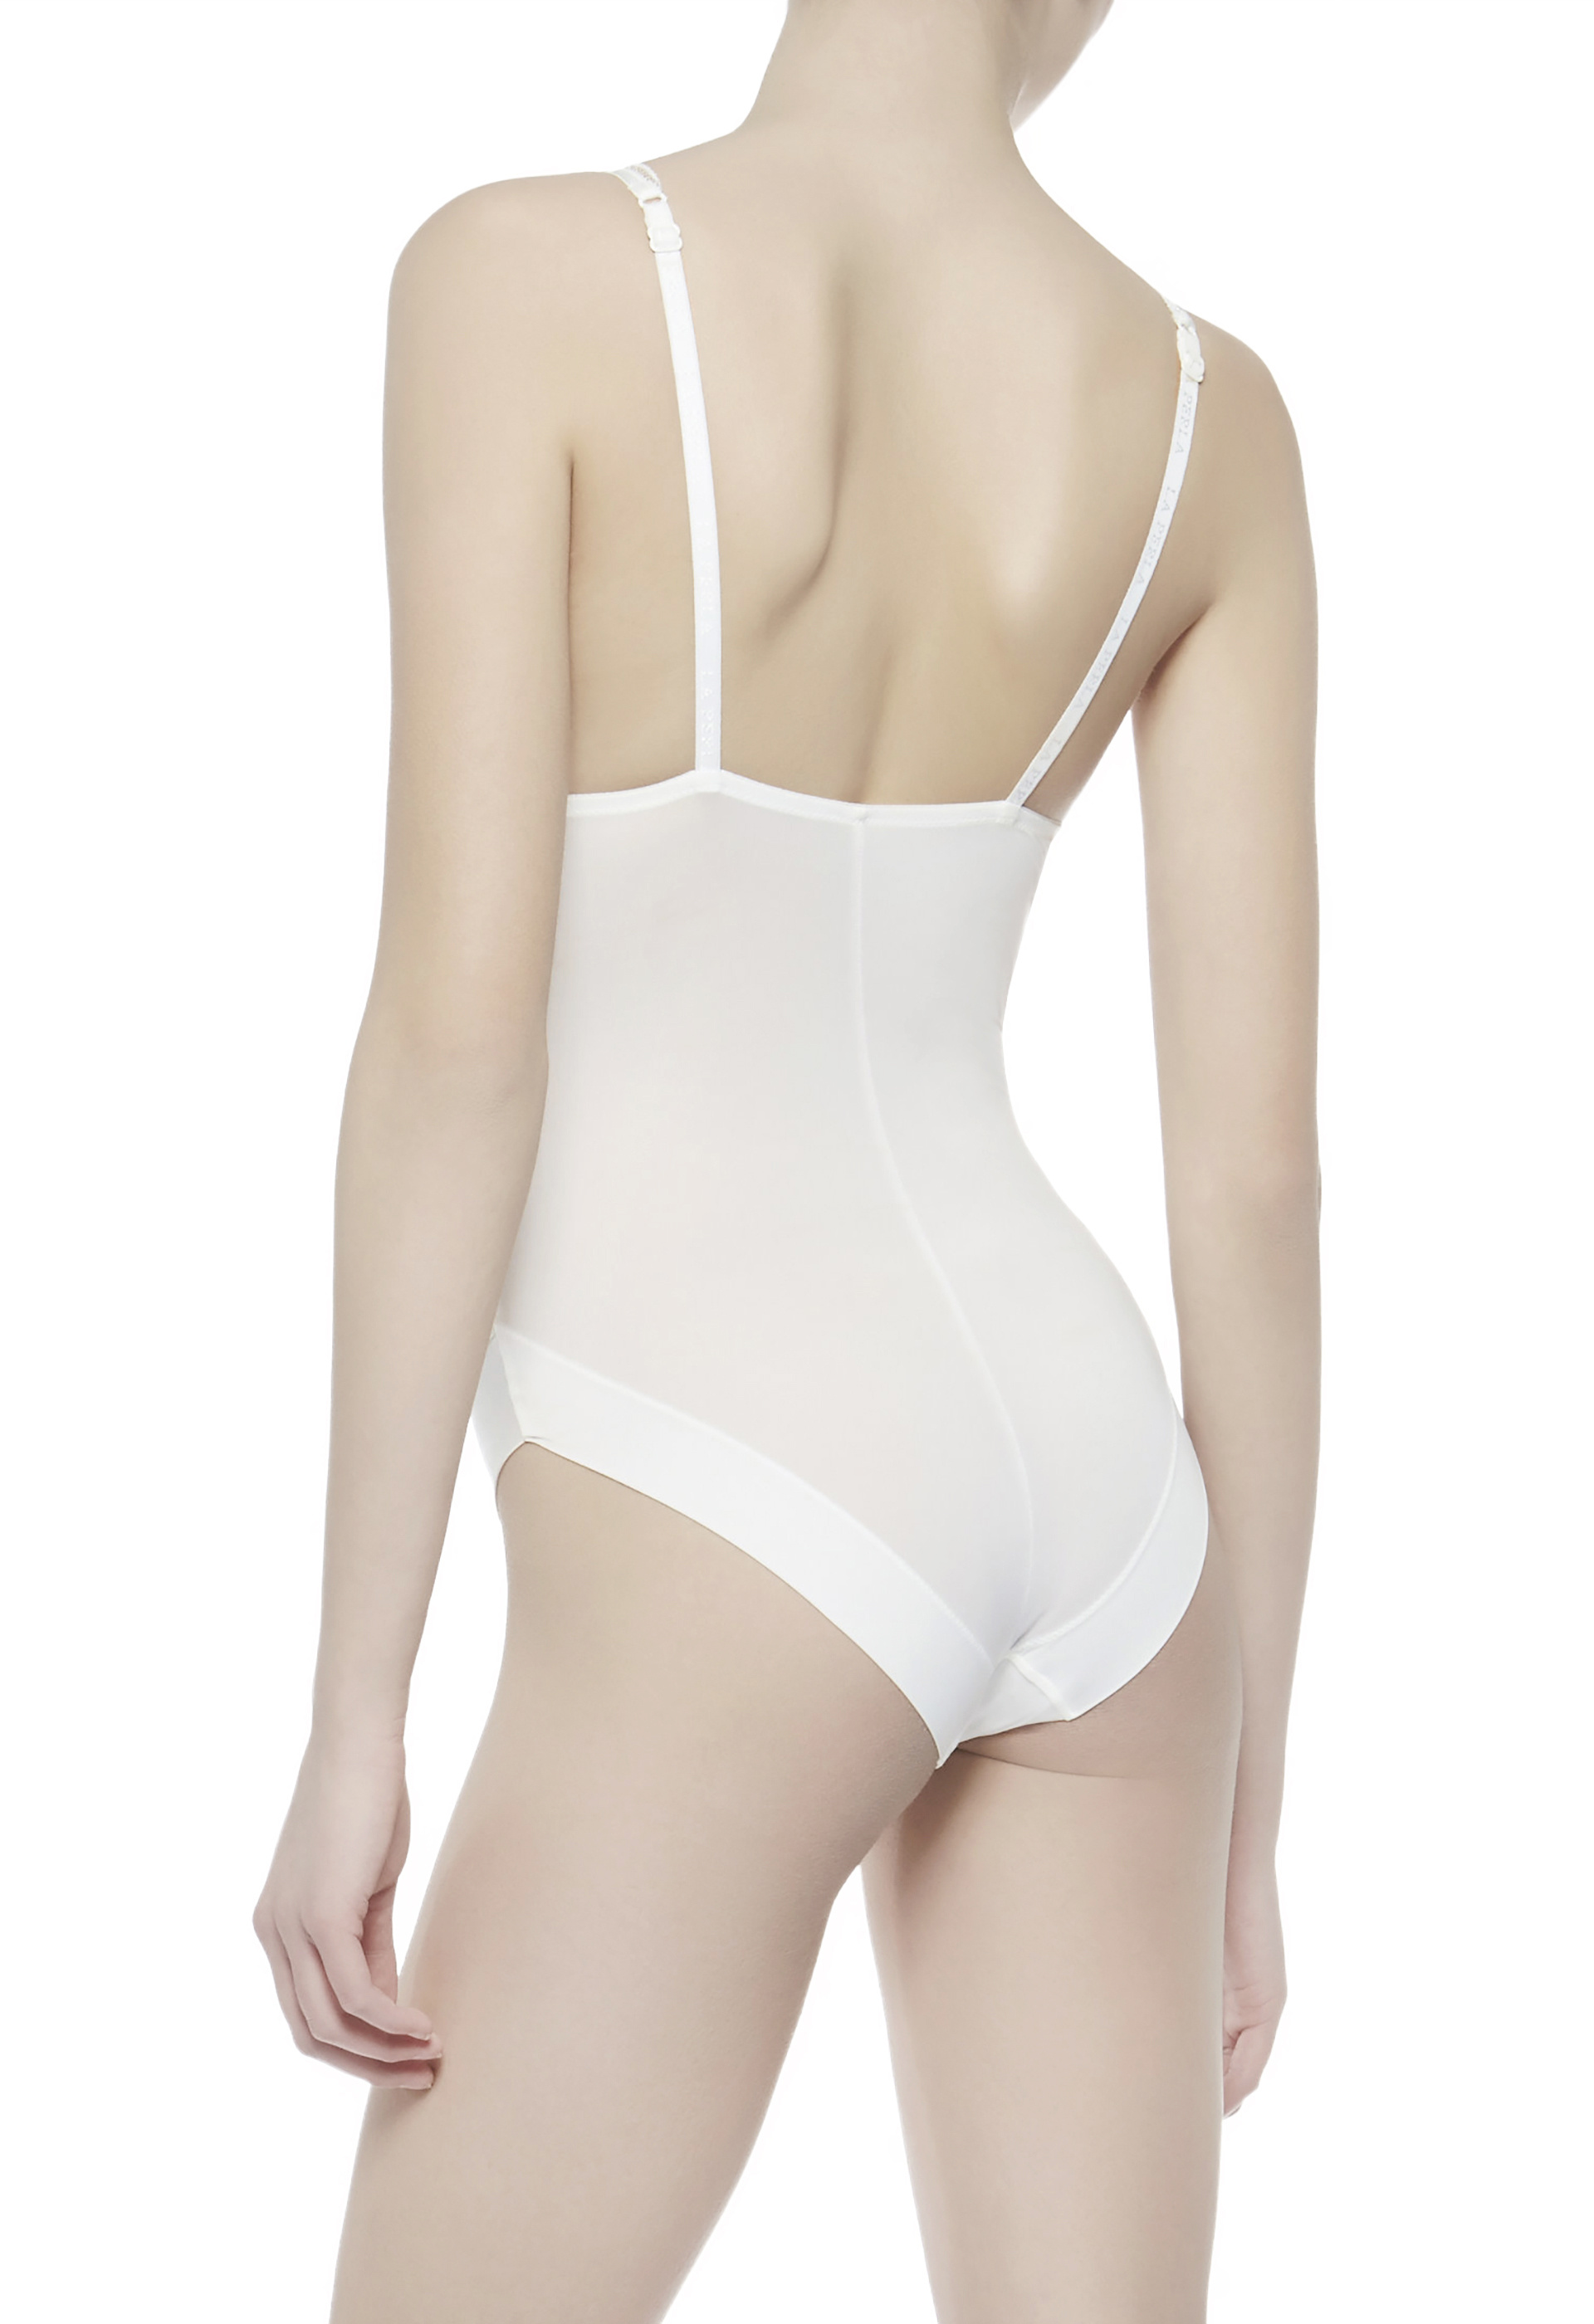 laperla bodysuits 14-15